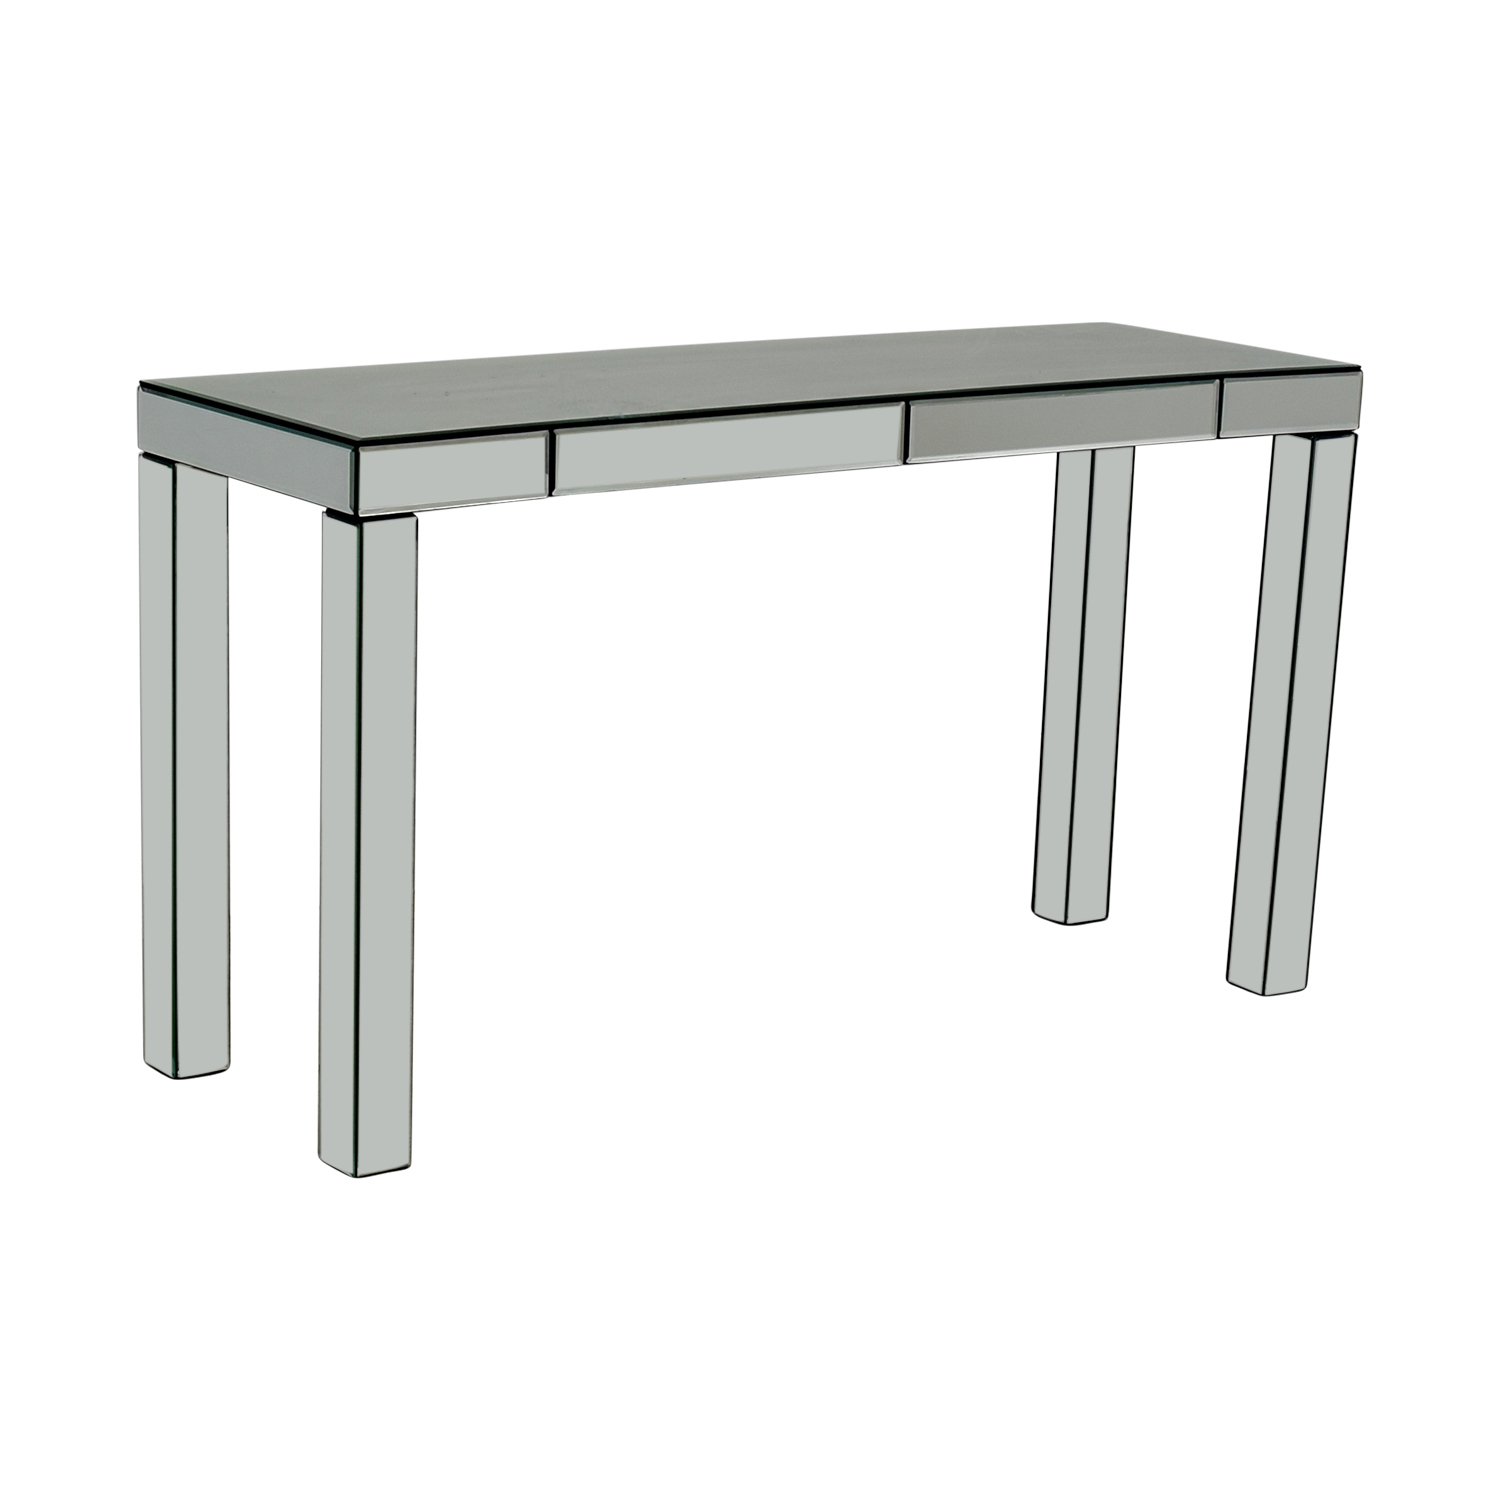 OFF West Elm West Elm Parsons Mirrored Console Tables - West elm parsons console table